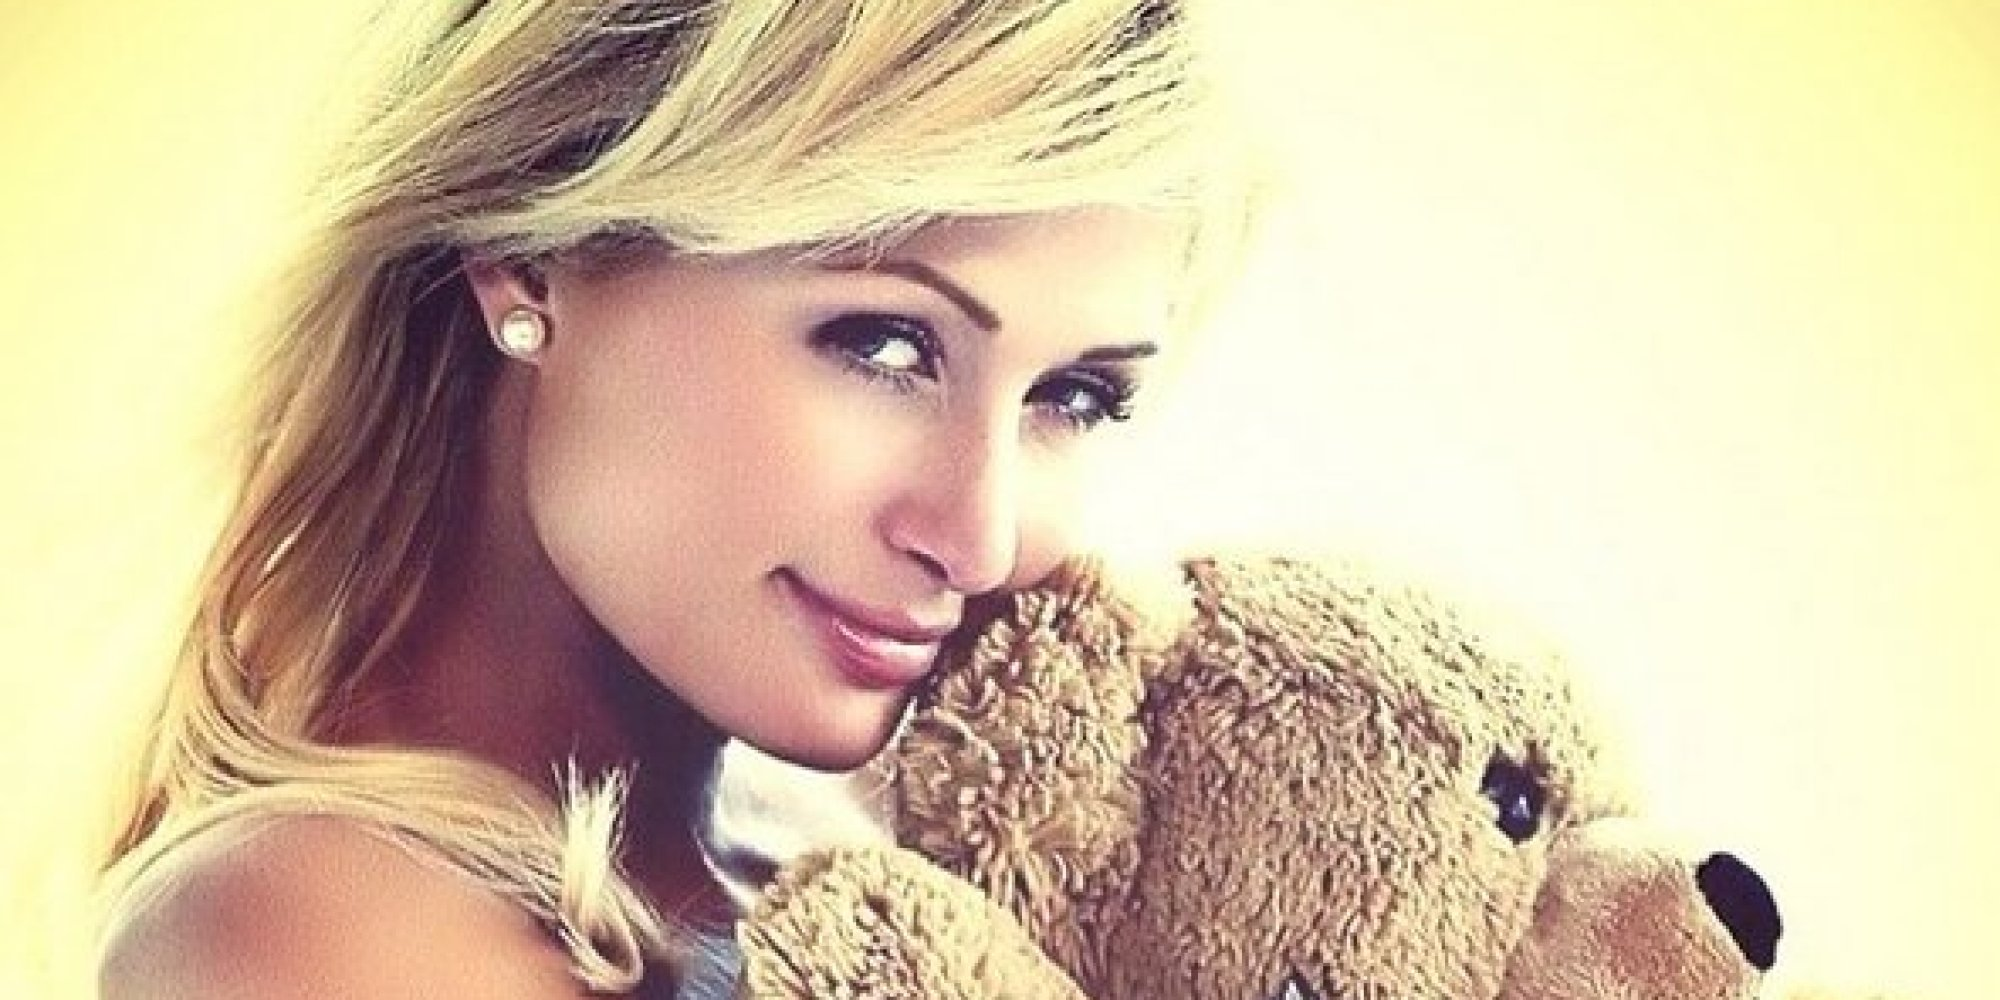 Paris Hilton Poses Topless While Hugging A Teddy Bear On